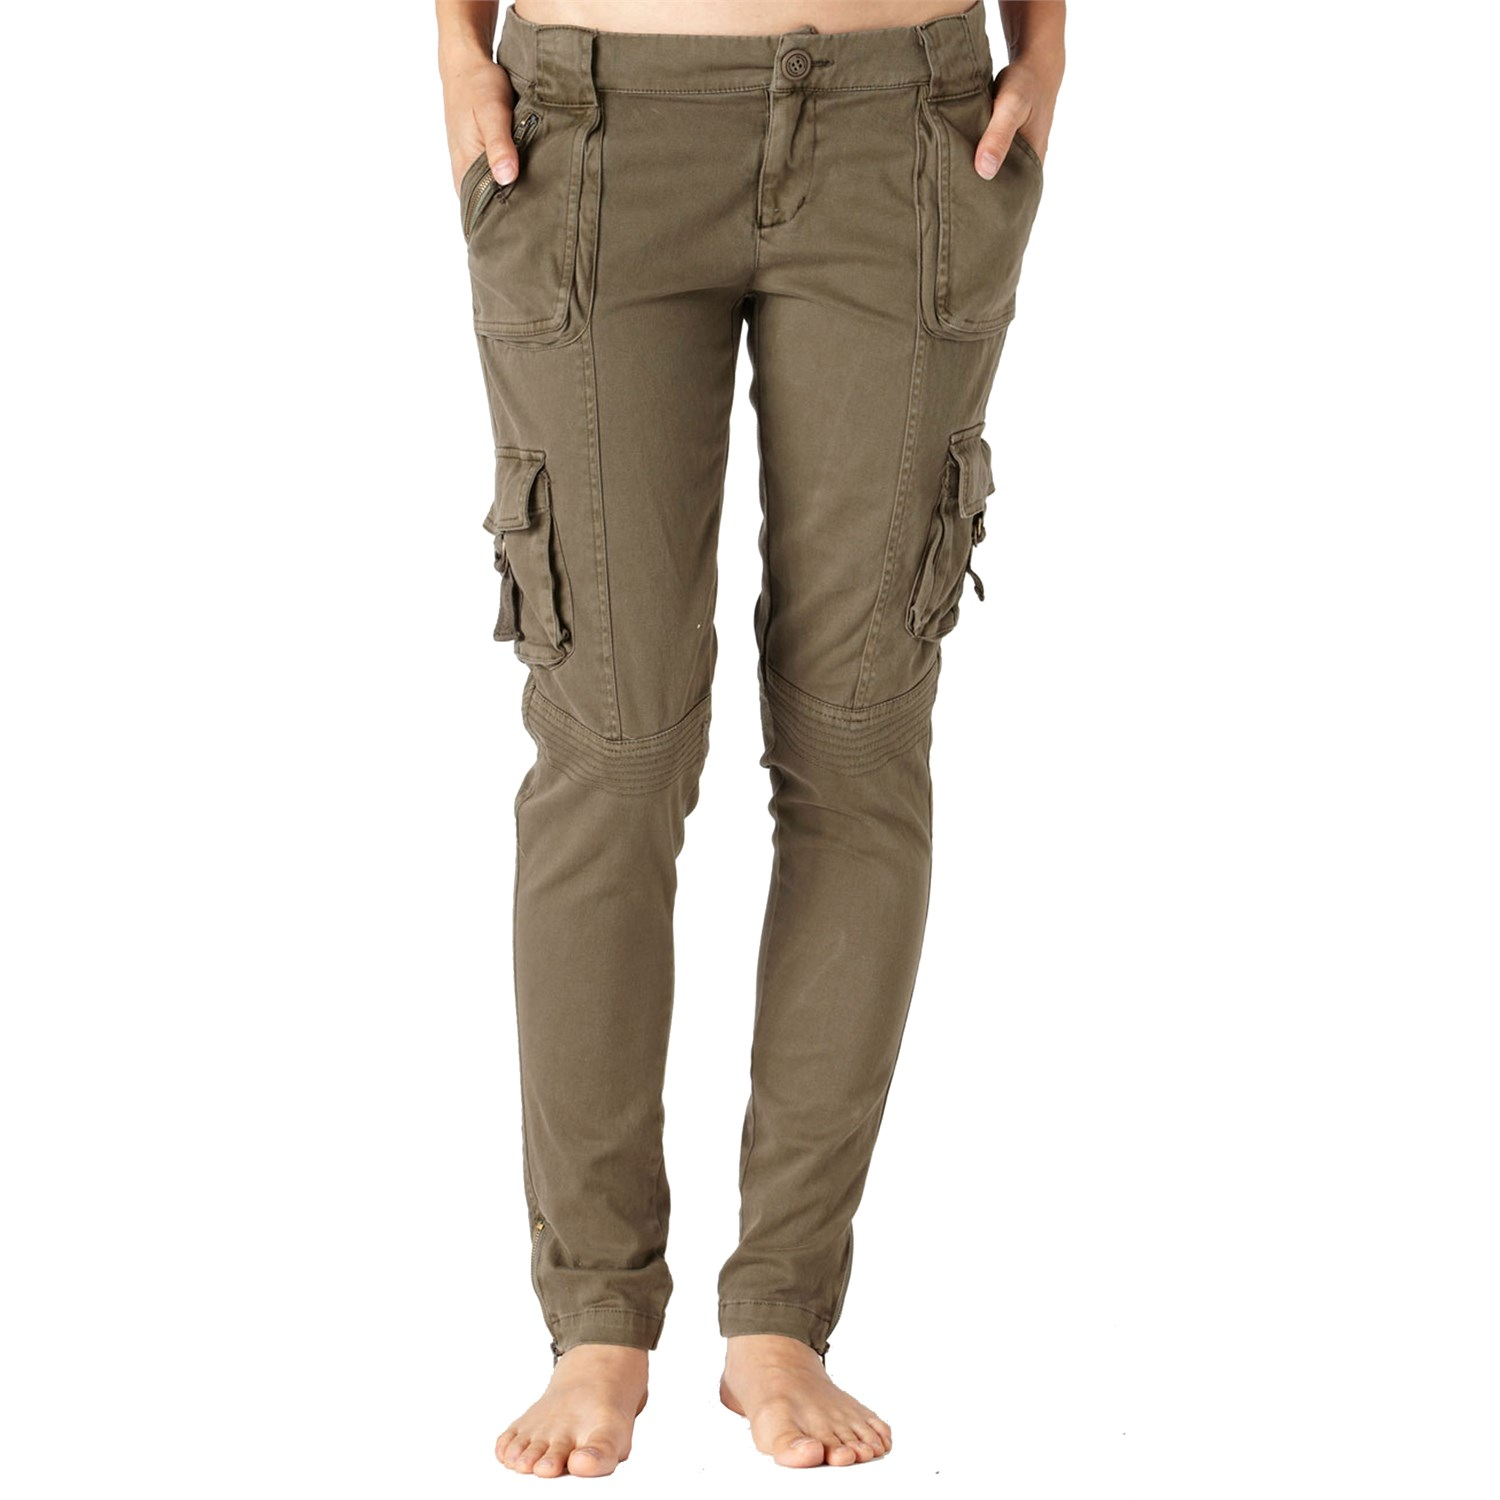 cargo pants for womens photo - 1